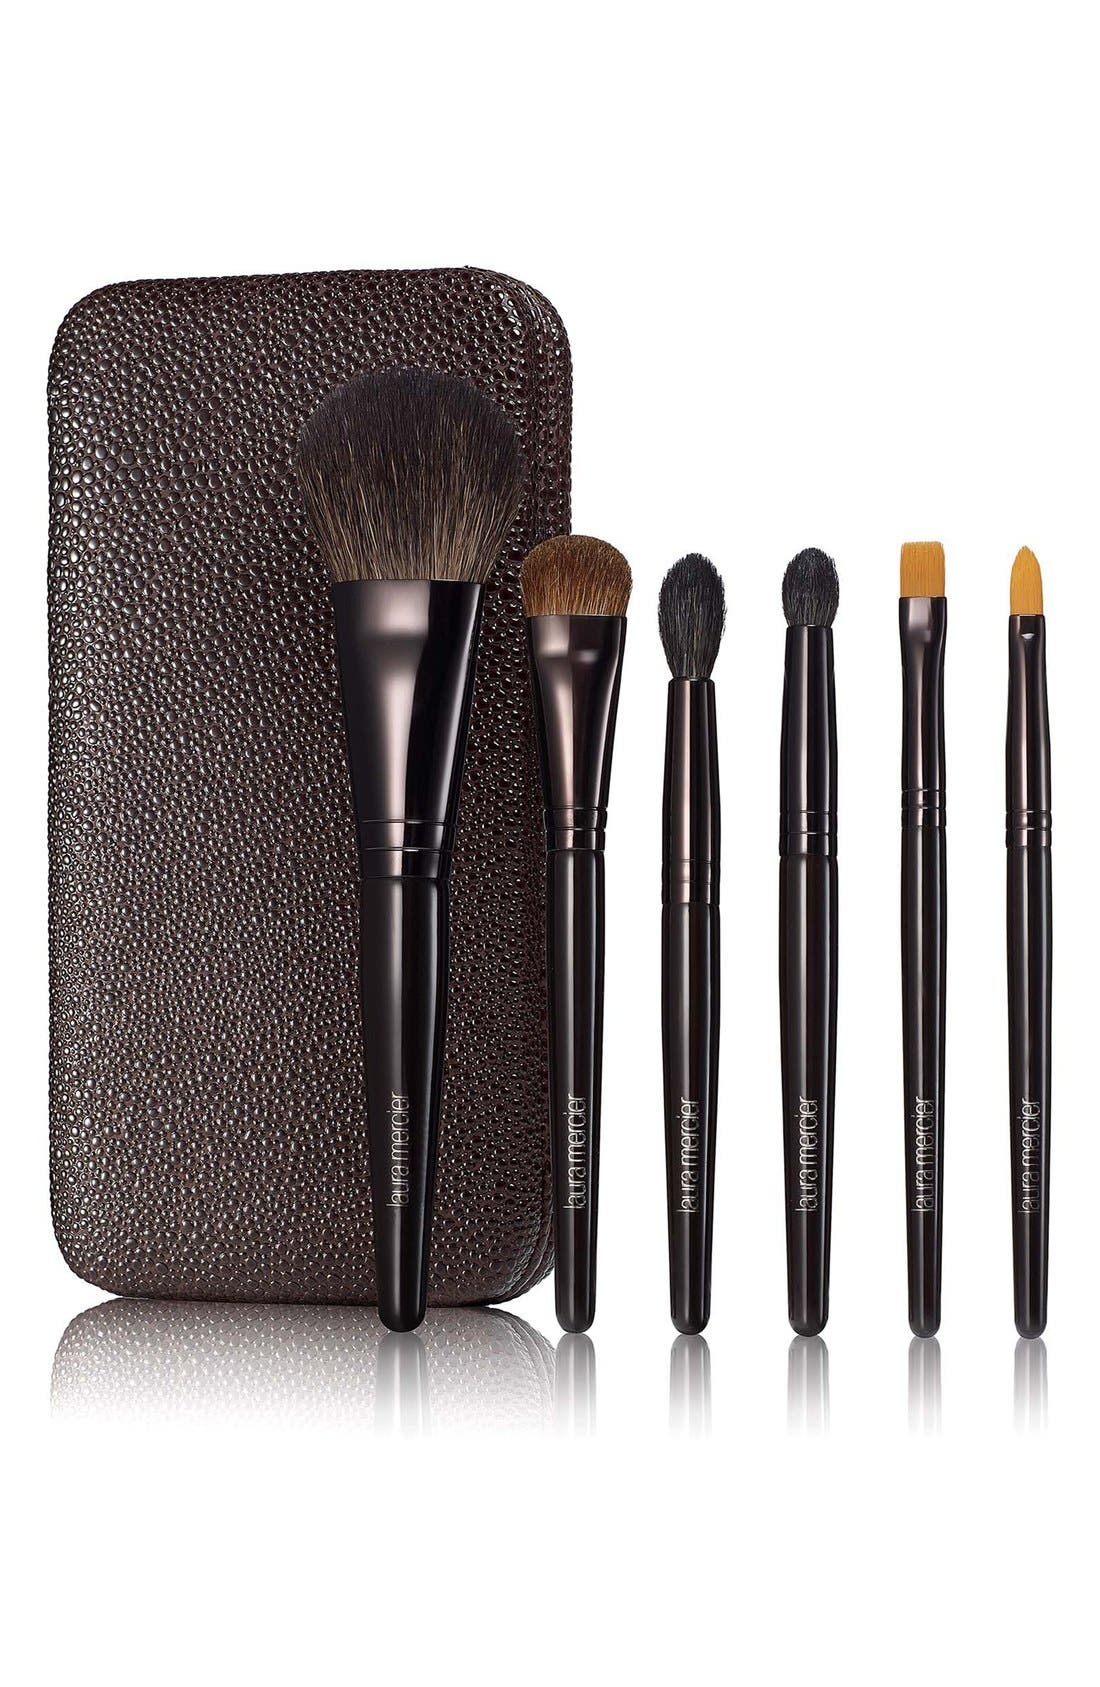 'Stroke of Genius' Luxe Brush Collection,                             Main thumbnail 1, color,                             000